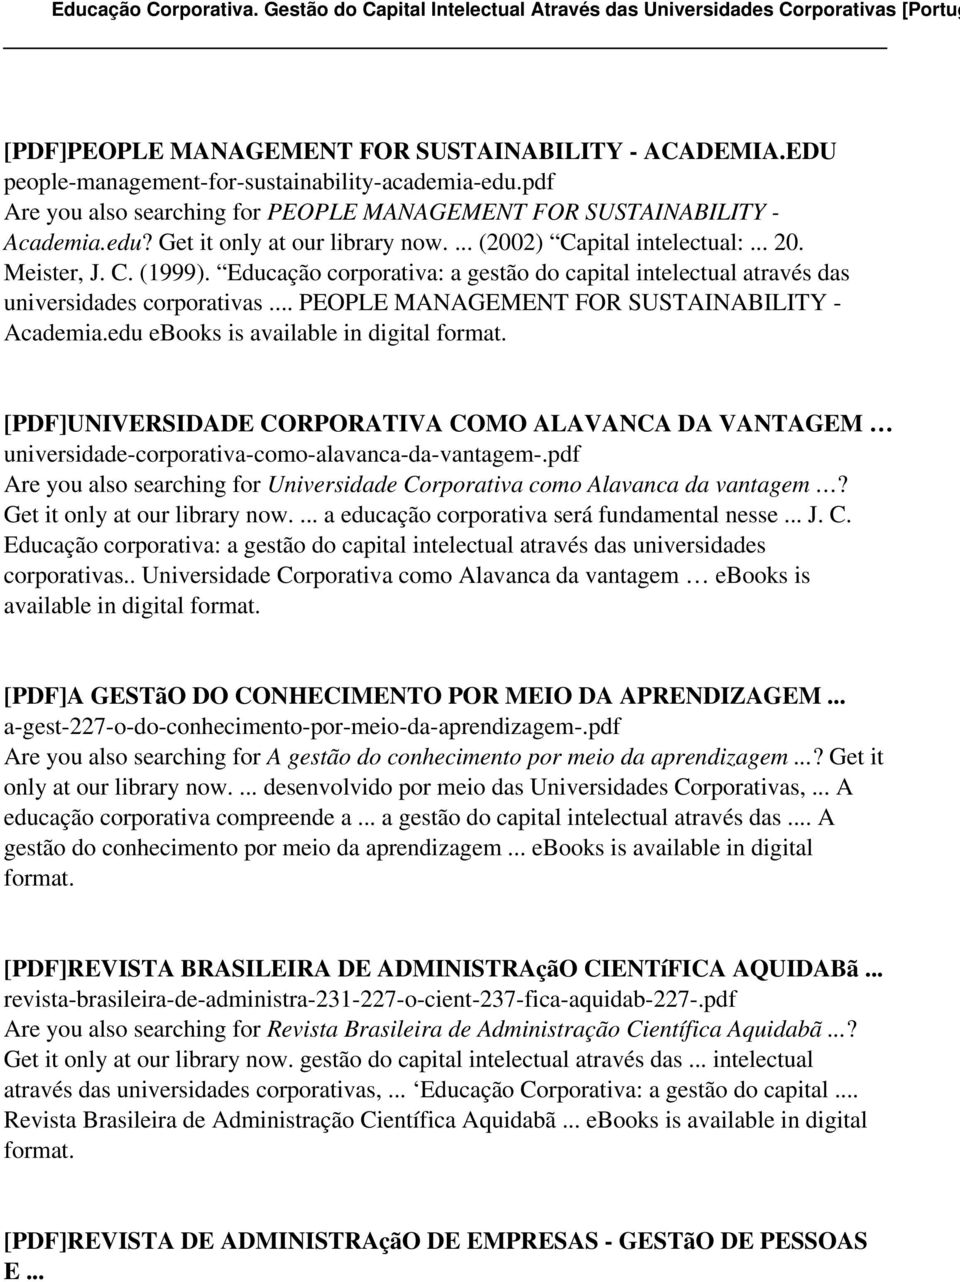 .. PEOPLE MANAGEMENT FOR SUSTAINABILITY - Academia.edu ebooks is [PDF]UNIVERSIDADE CORPORATIVA COMO ALAVANCA DA VANTAGEM universidade-corporativa-como-alavanca-da-vantagem-.